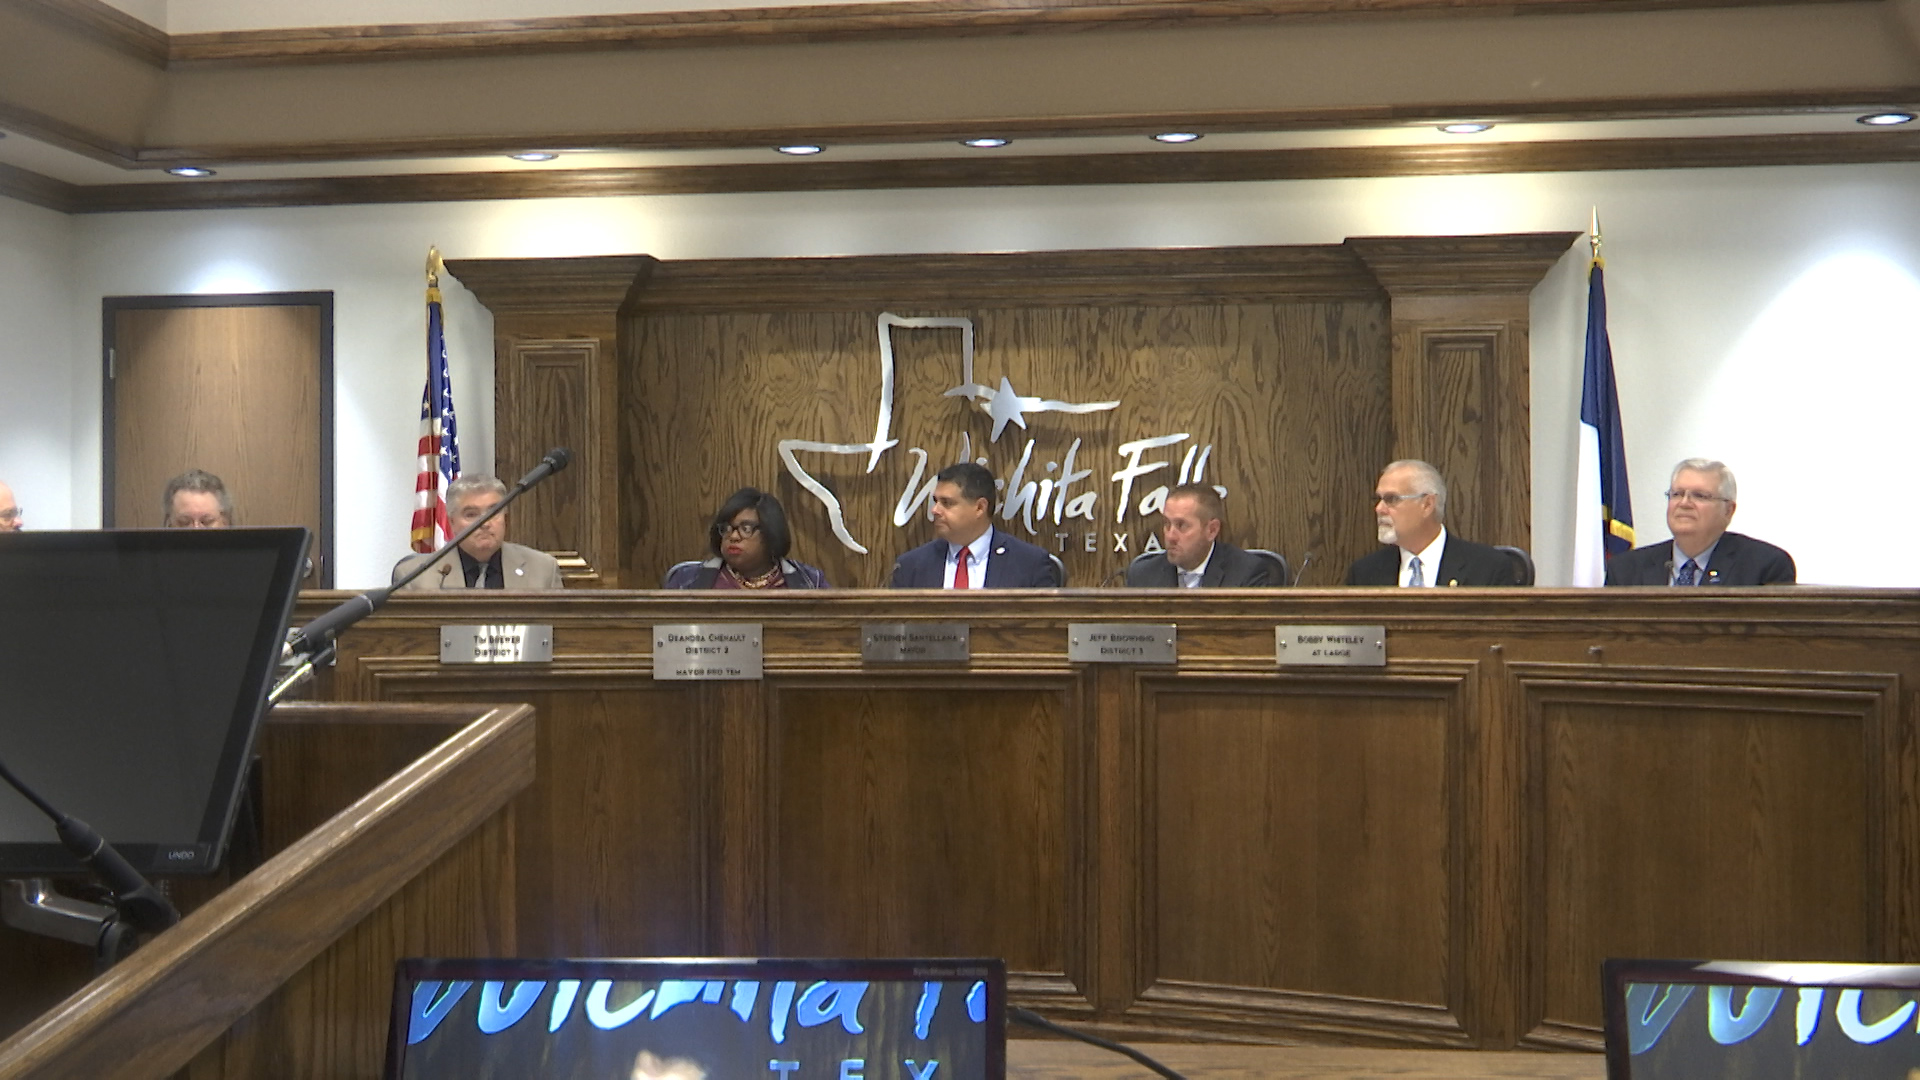 After dedicating ten years to the city, Michael Smith has returned to the council.